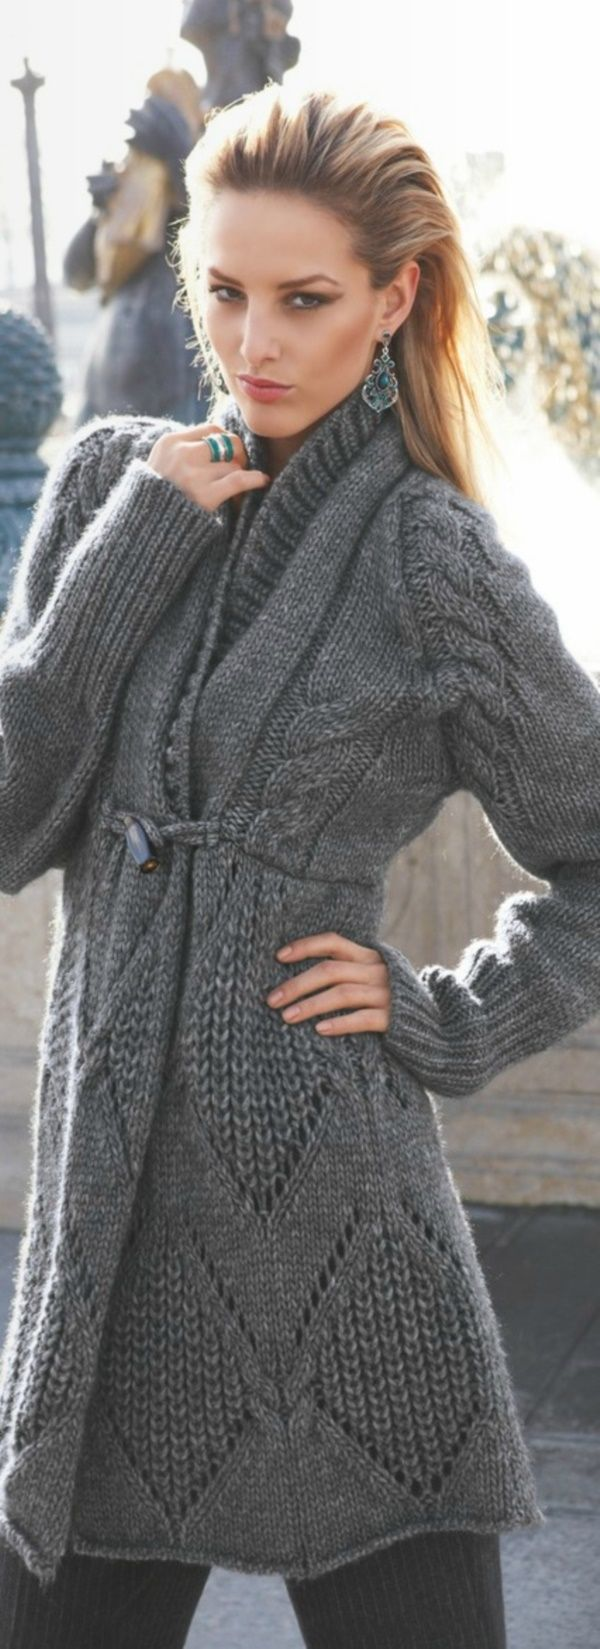 185 best Knitting and Crochet shrugs/sweaters/boleros images on ...